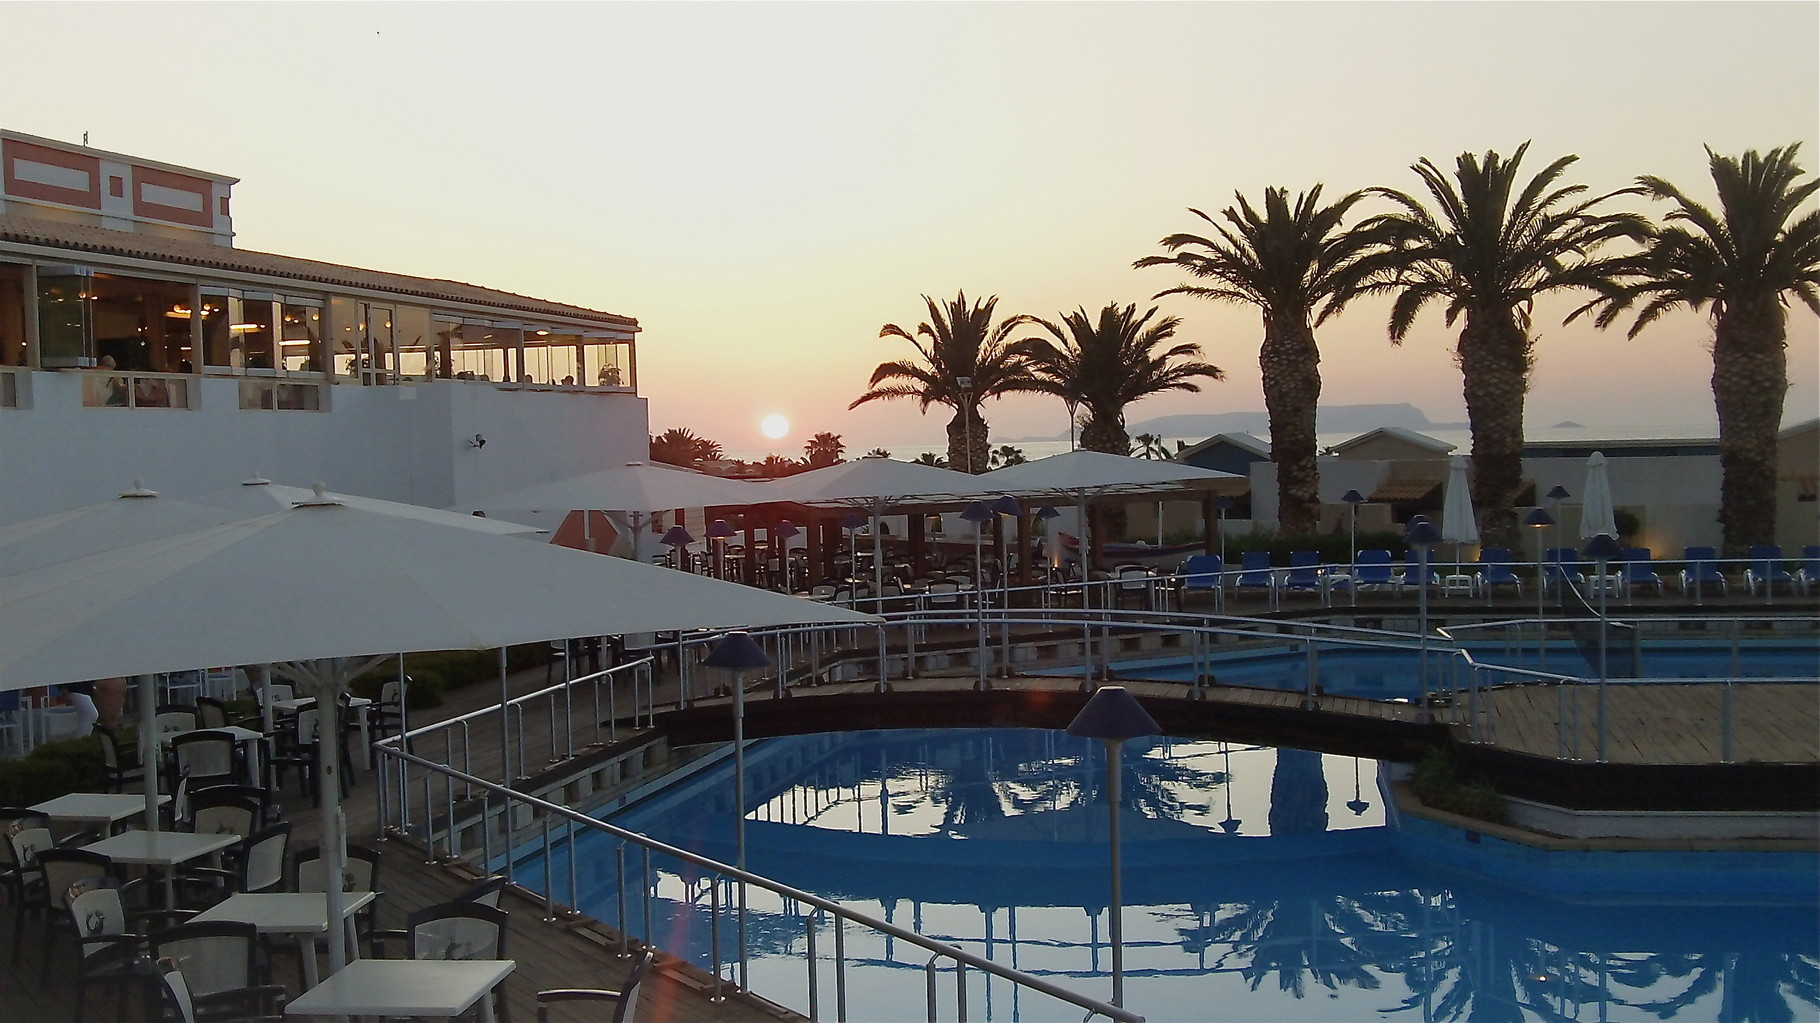 Sunset at the hotel in Crete.